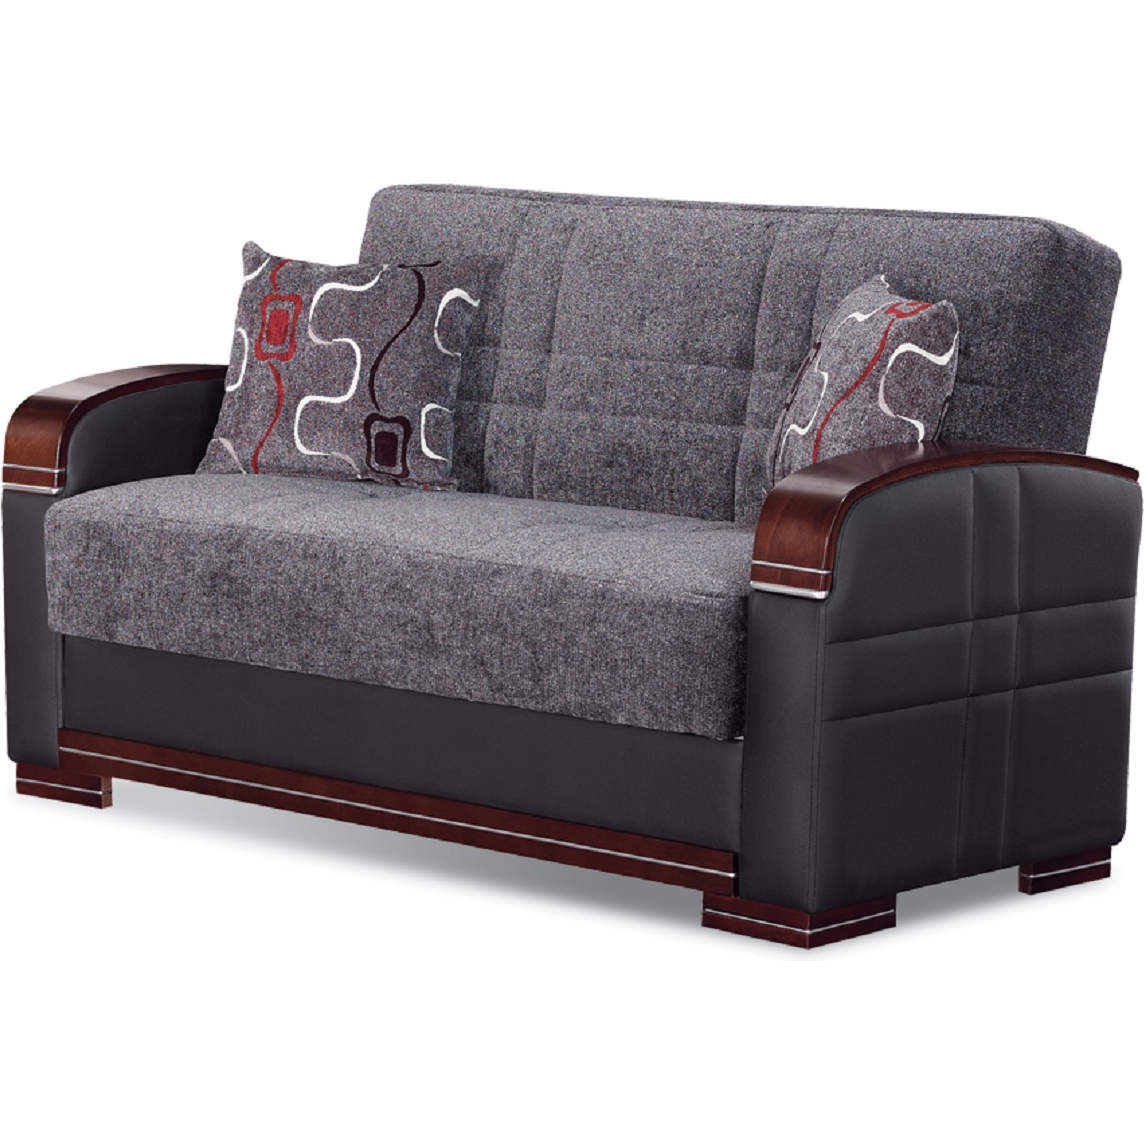 Terrific Montana Convertible Loveseat In Gray Fabric Black Leatherette By Empire Furniture Evergreenethics Interior Chair Design Evergreenethicsorg